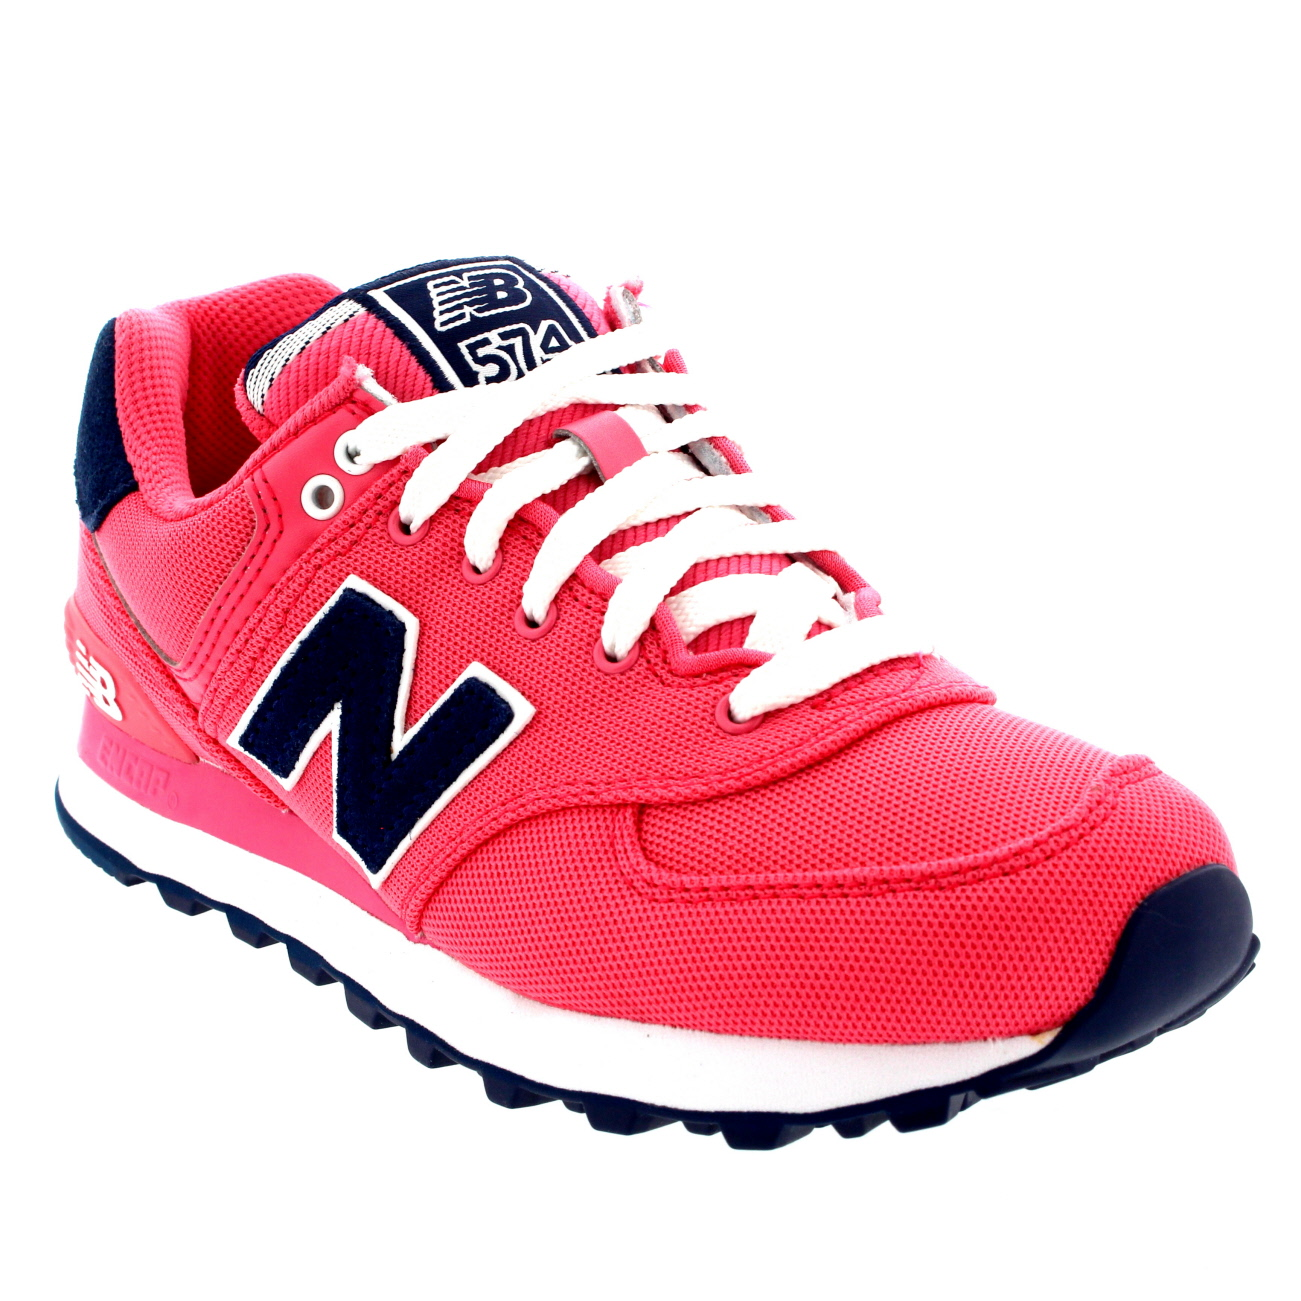 New Balance Pique Polo Pack Trainers